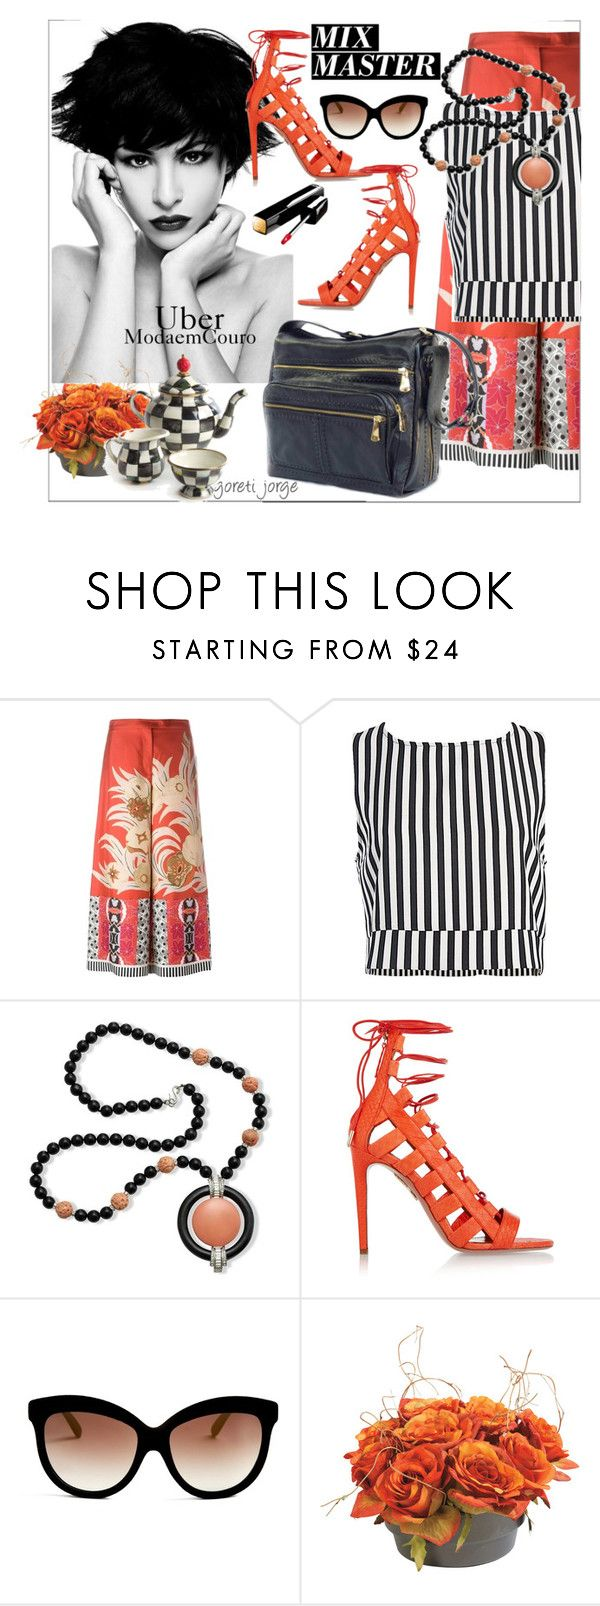 """Mix Master"" by goreti ❤ liked on Polyvore featuring Etro, Sans Souci, Kenneth Jay Lane, Aquazzura, Italia Independent, Ethan Allen, ubermodaemcouro and polyvoeeditorial"